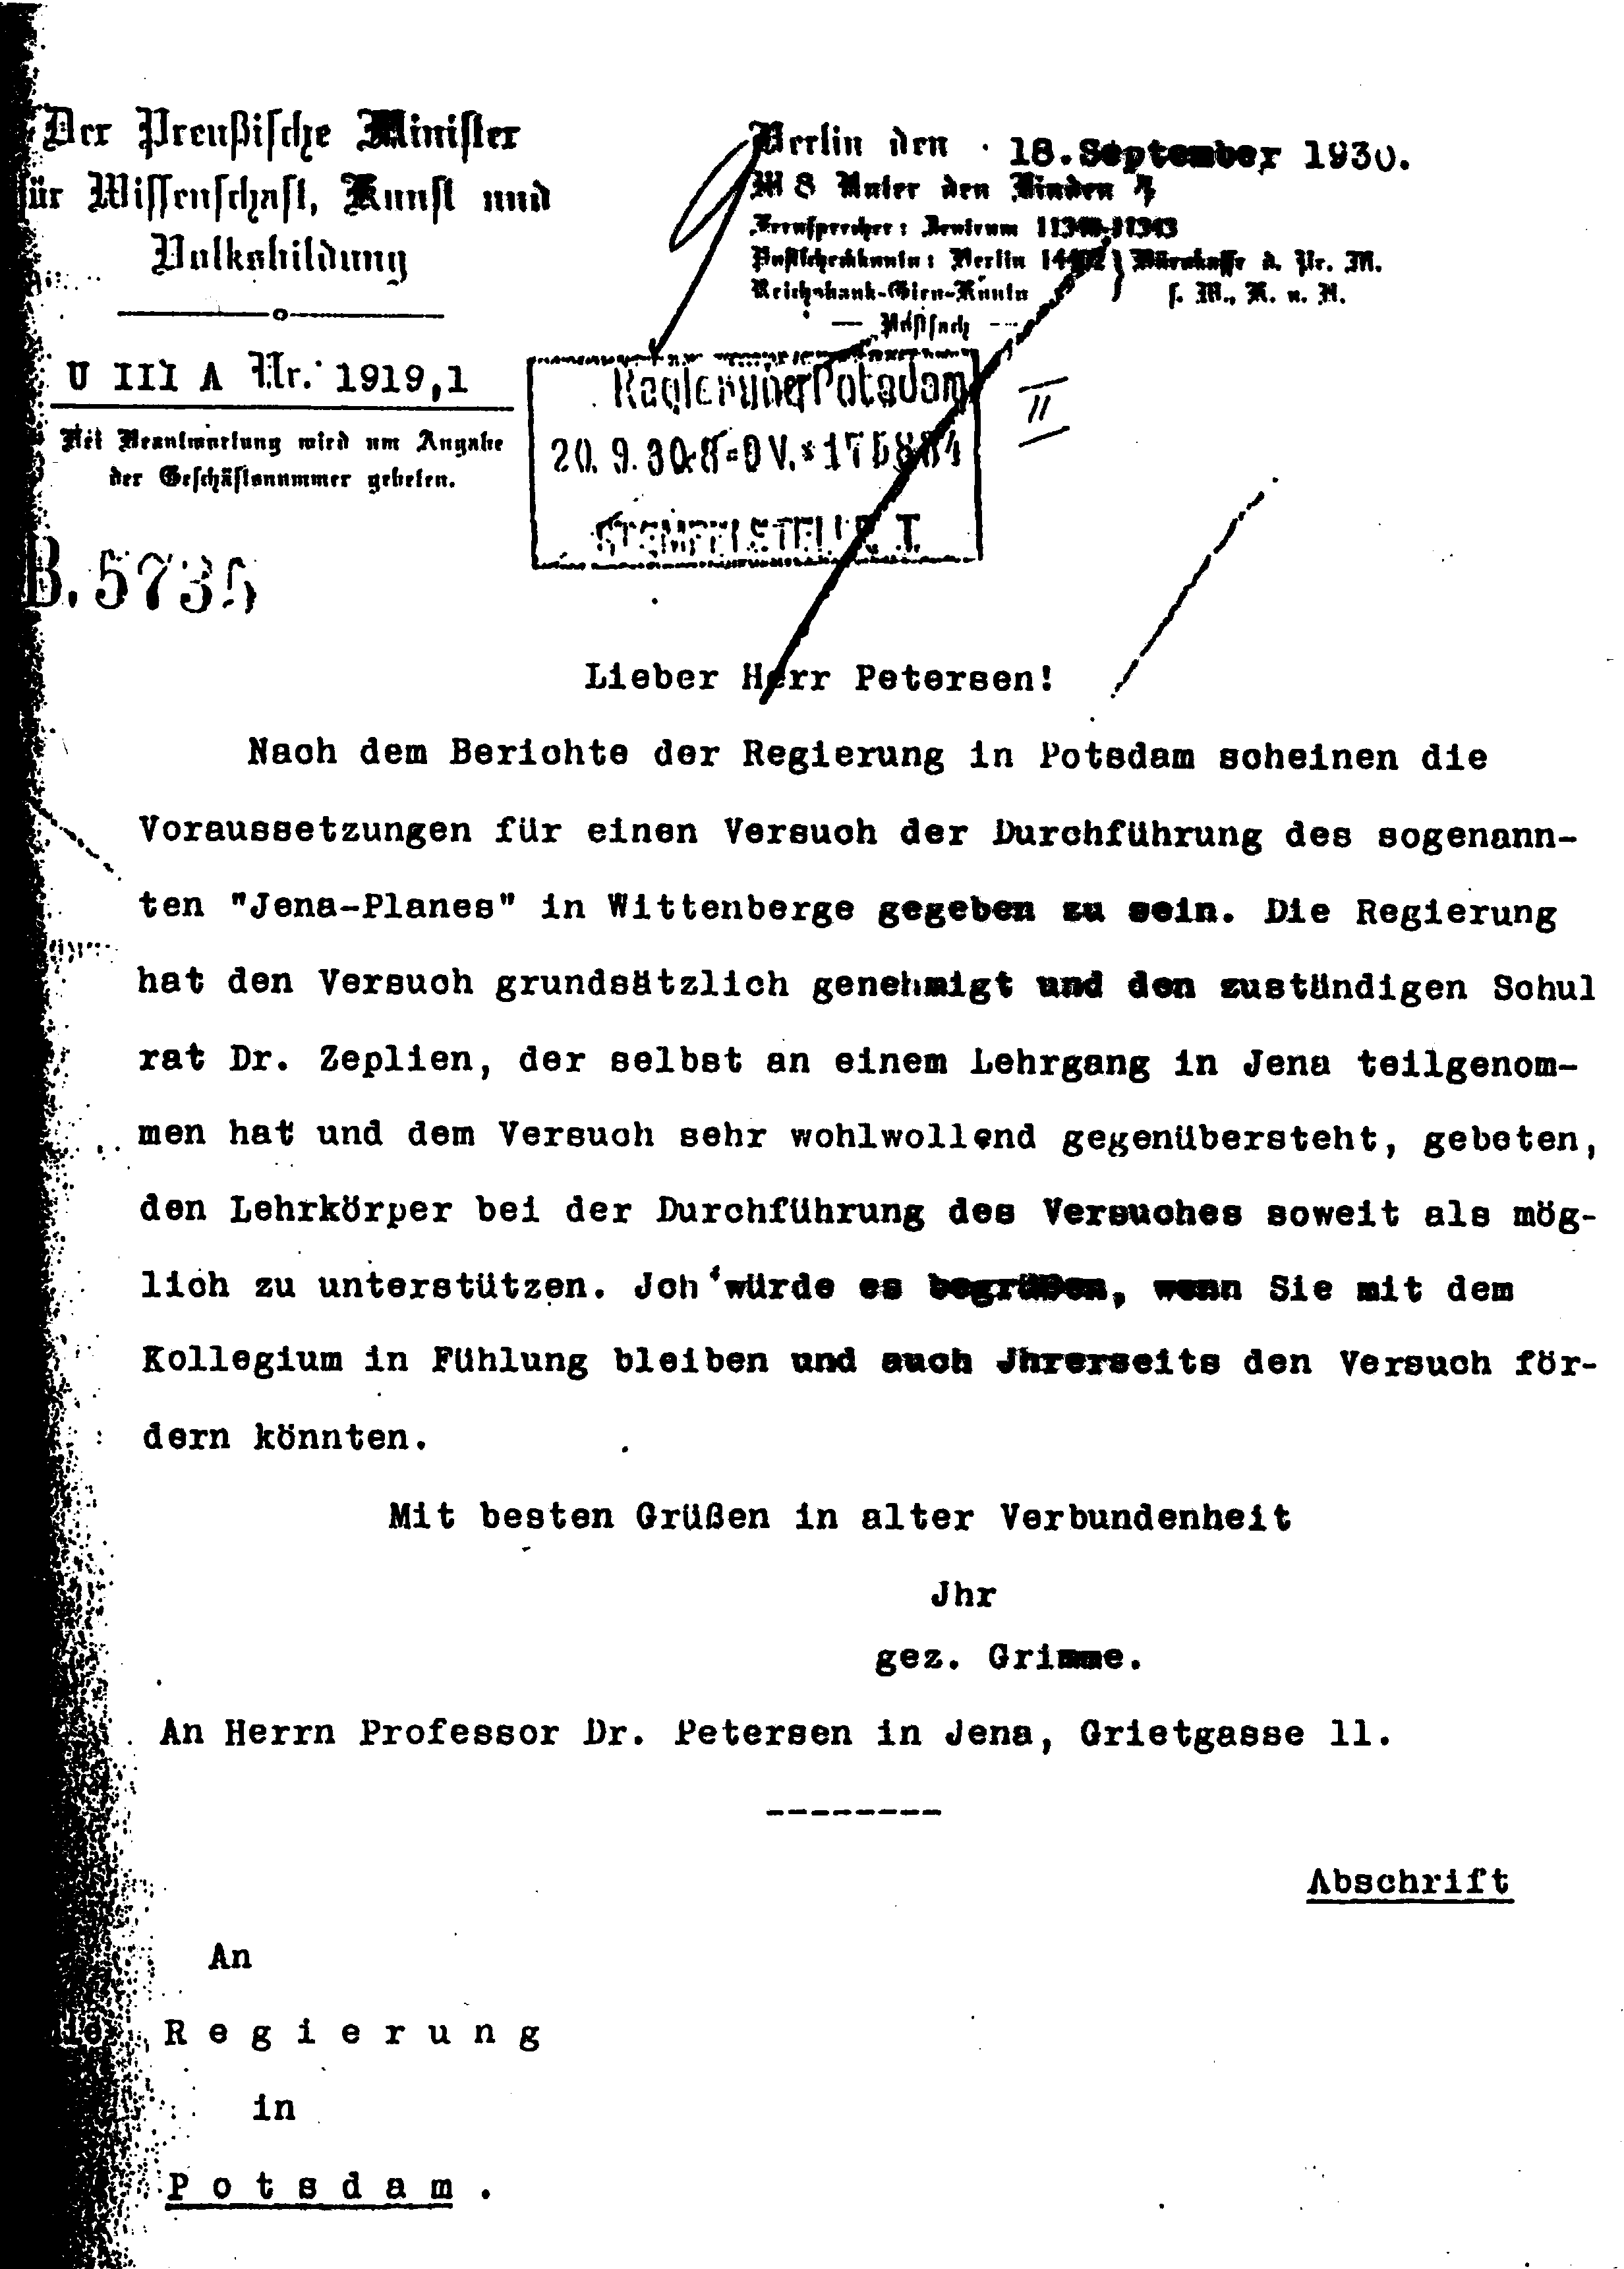 Figure 20: Letter from the Prussian Minister of Education, Adolf Grimme, dated September 18, 1930: Approval of the Jenaplan organisation of an elementaty school, in the town of Wittenberge.